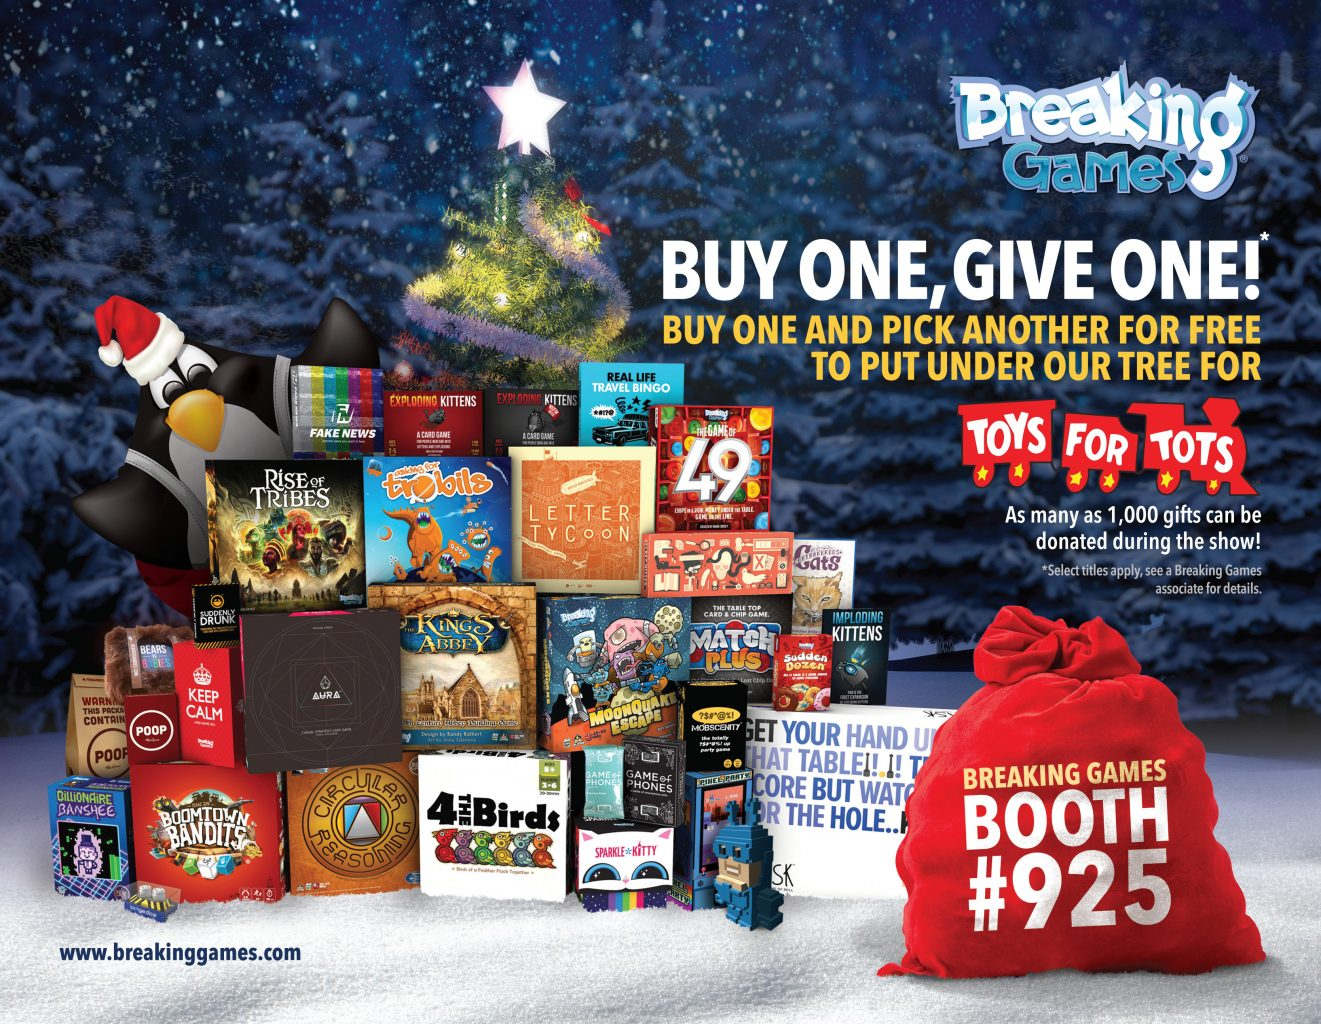 Breaking Games Donating Toys for Tots at PAX